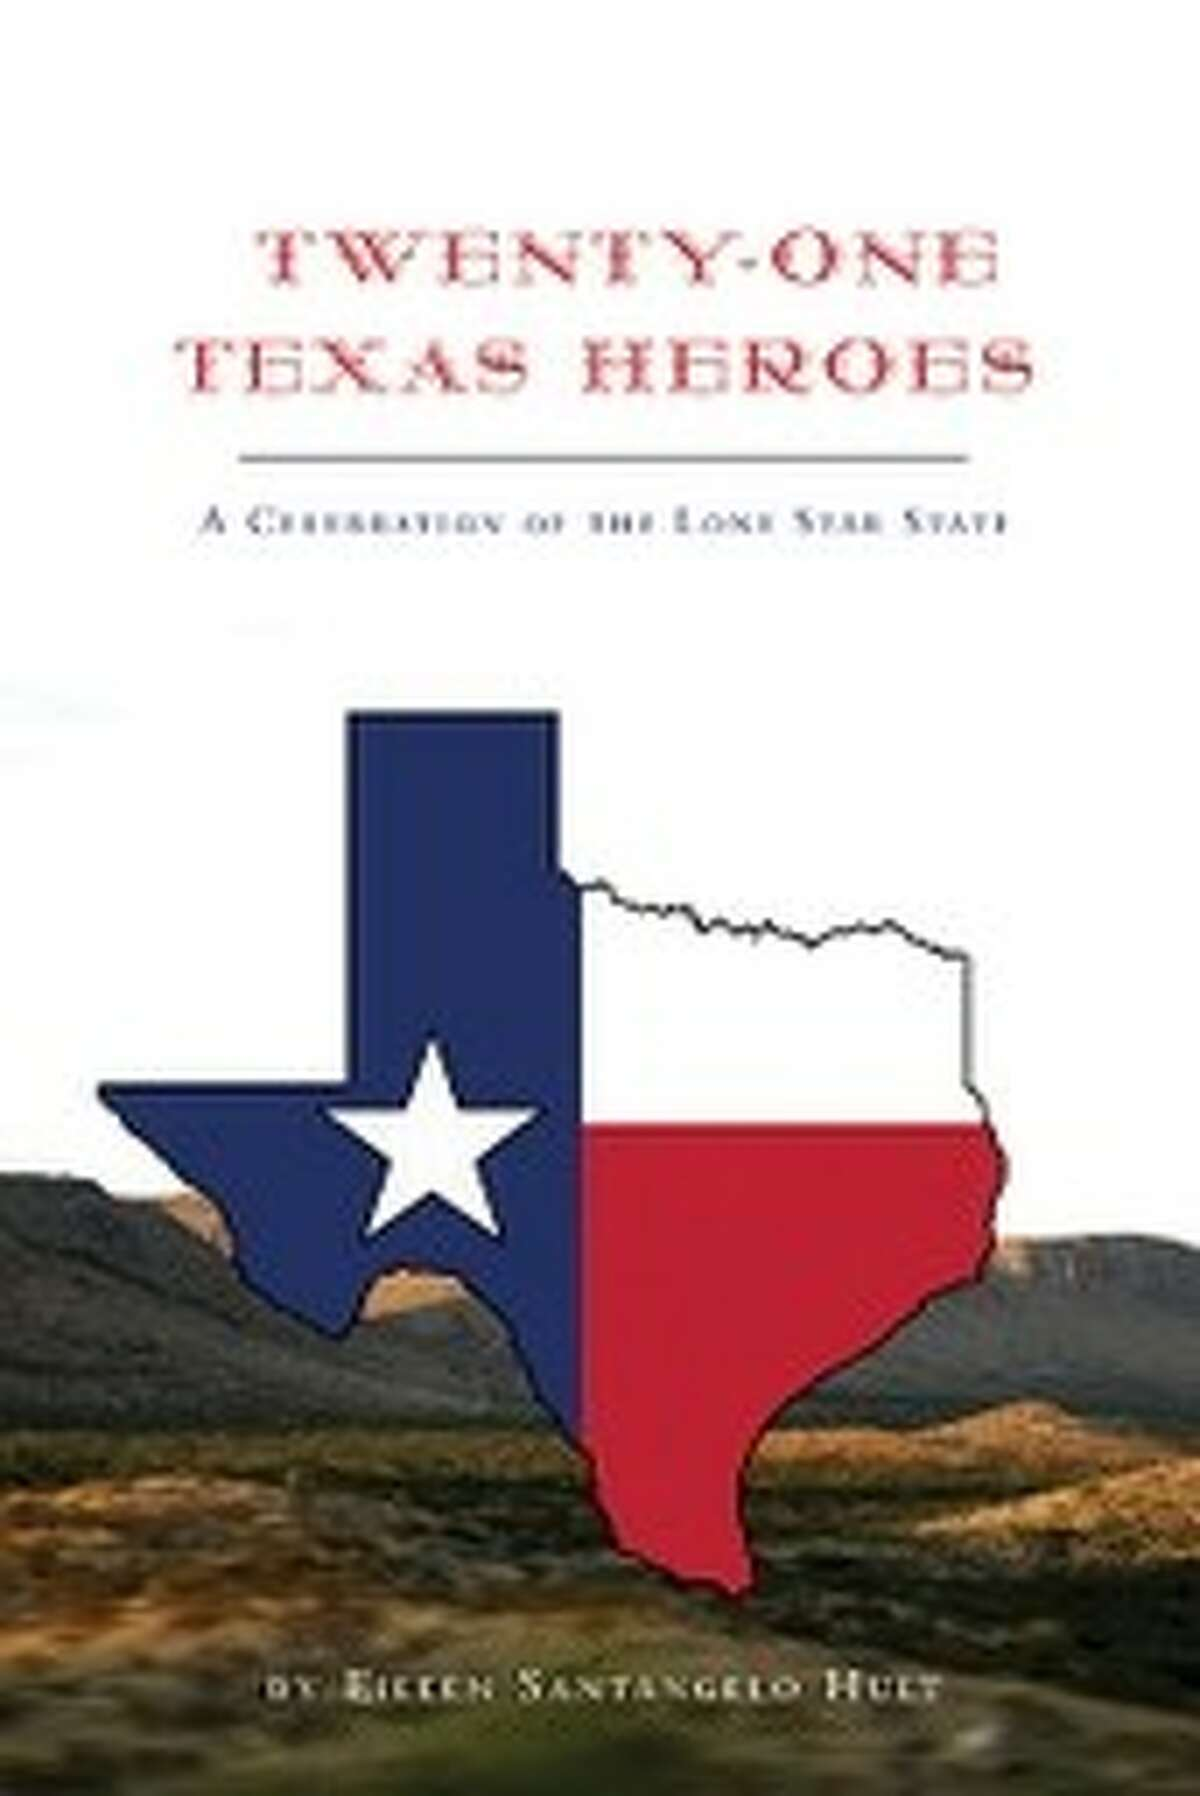 """The Clear Lake City County, Freeman Branch Library is hosting a book talk featuring author Eileen Hult, who has recently published a book of Texas history entitled """"Twenty-One Texas Heroes: A Celebration of the Lone Star State."""" The event is scheduled Friday, June 29 from 10 a.m. to 1 p.m. in the Marge Jacobson Meeting Room."""